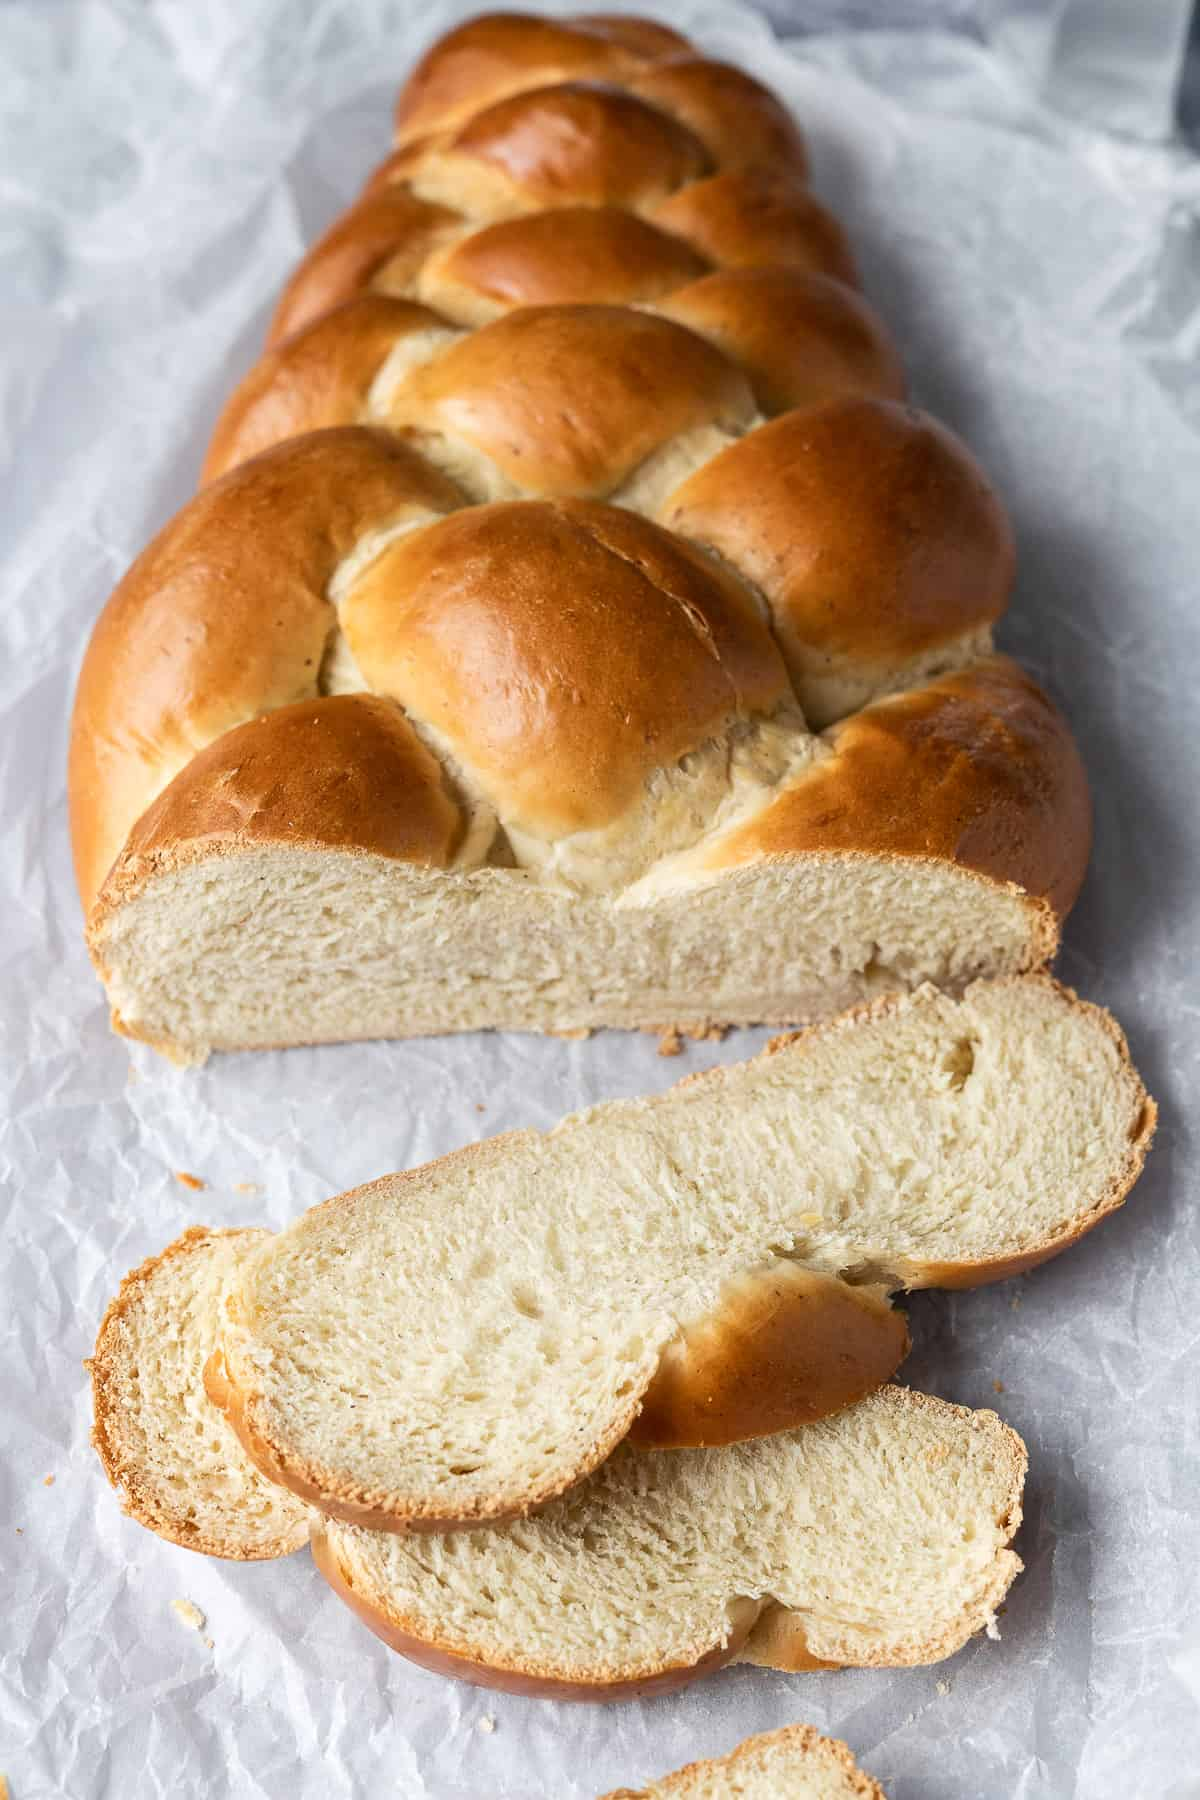 The sliced loaf of pulla bread on white baking parchment.